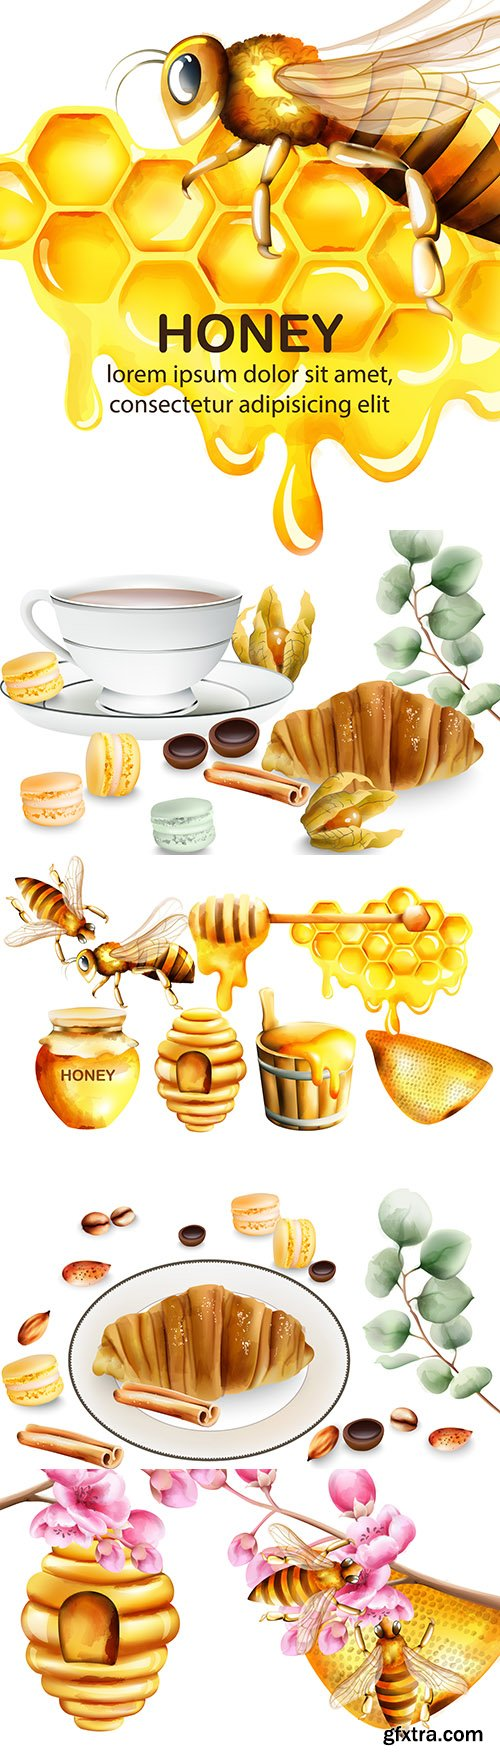 Honey with bees and delicious croissant for tea party